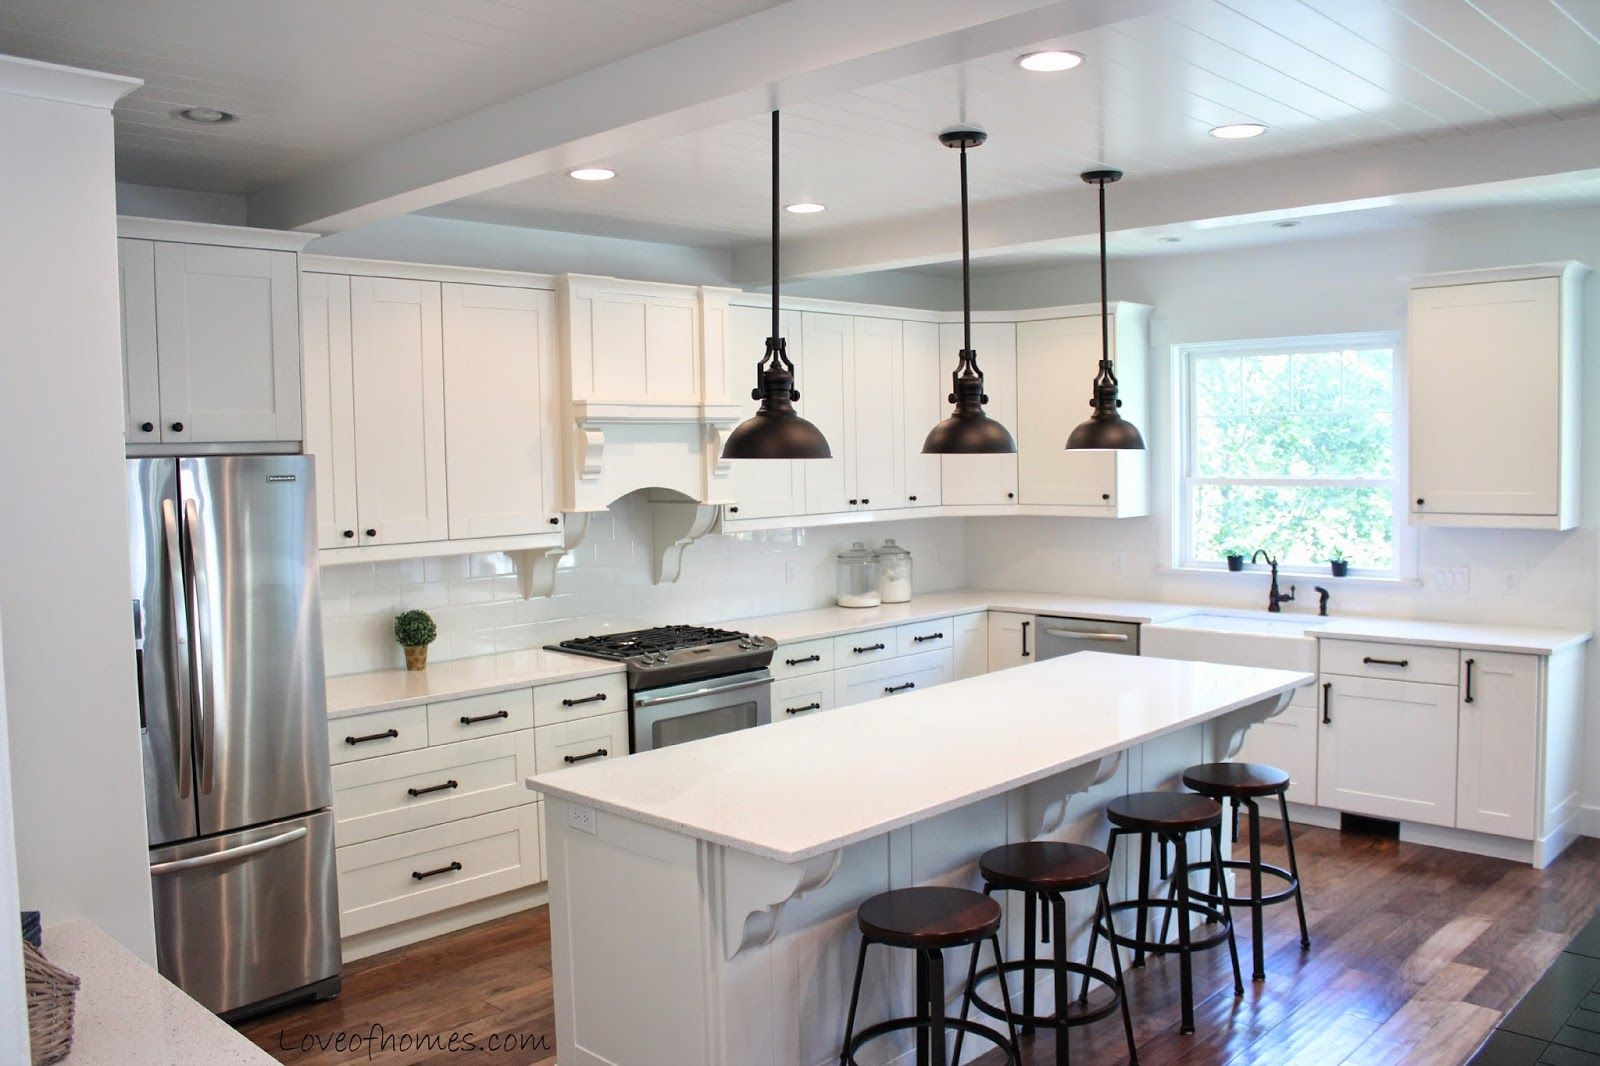 Ikea Adel Kitchen Cabinets In White   Kitchen Remodel {REVEAL}   Amazing  Before U0026 After